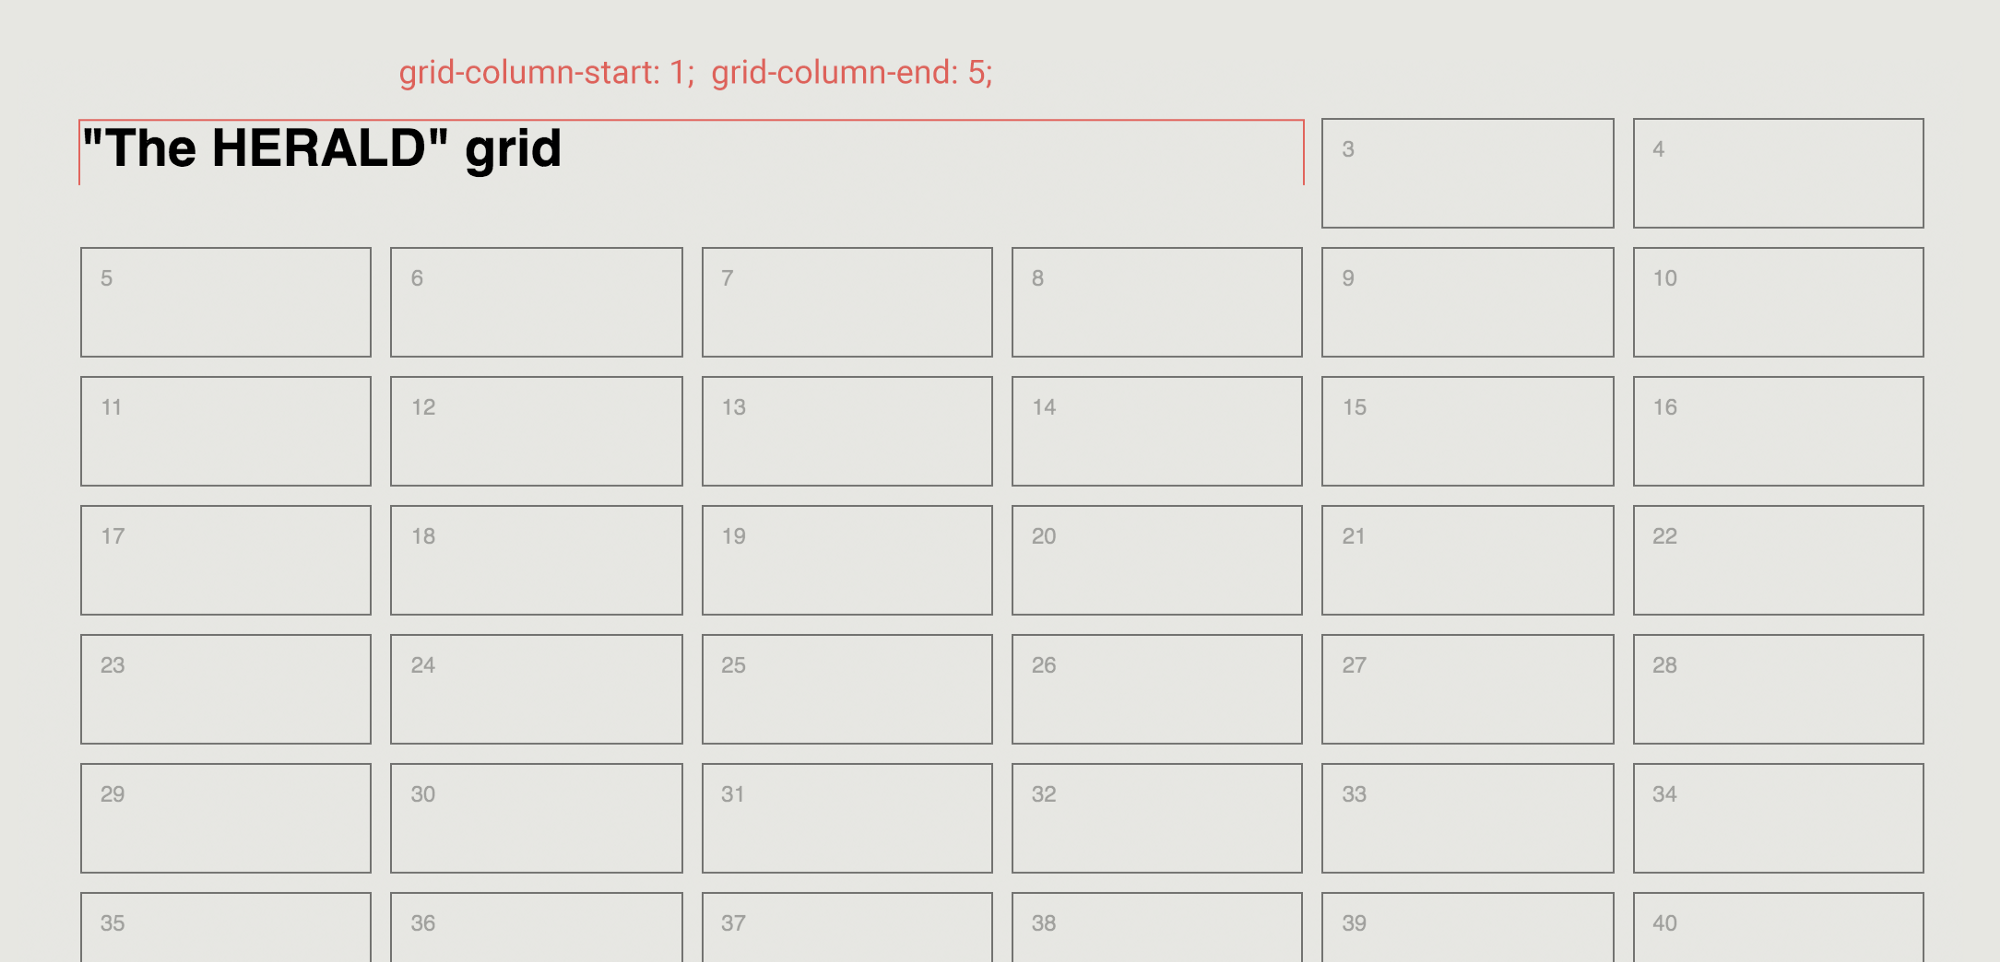 Learning Css Grid Layout With The Swiss Noteworthy The Journal Blog